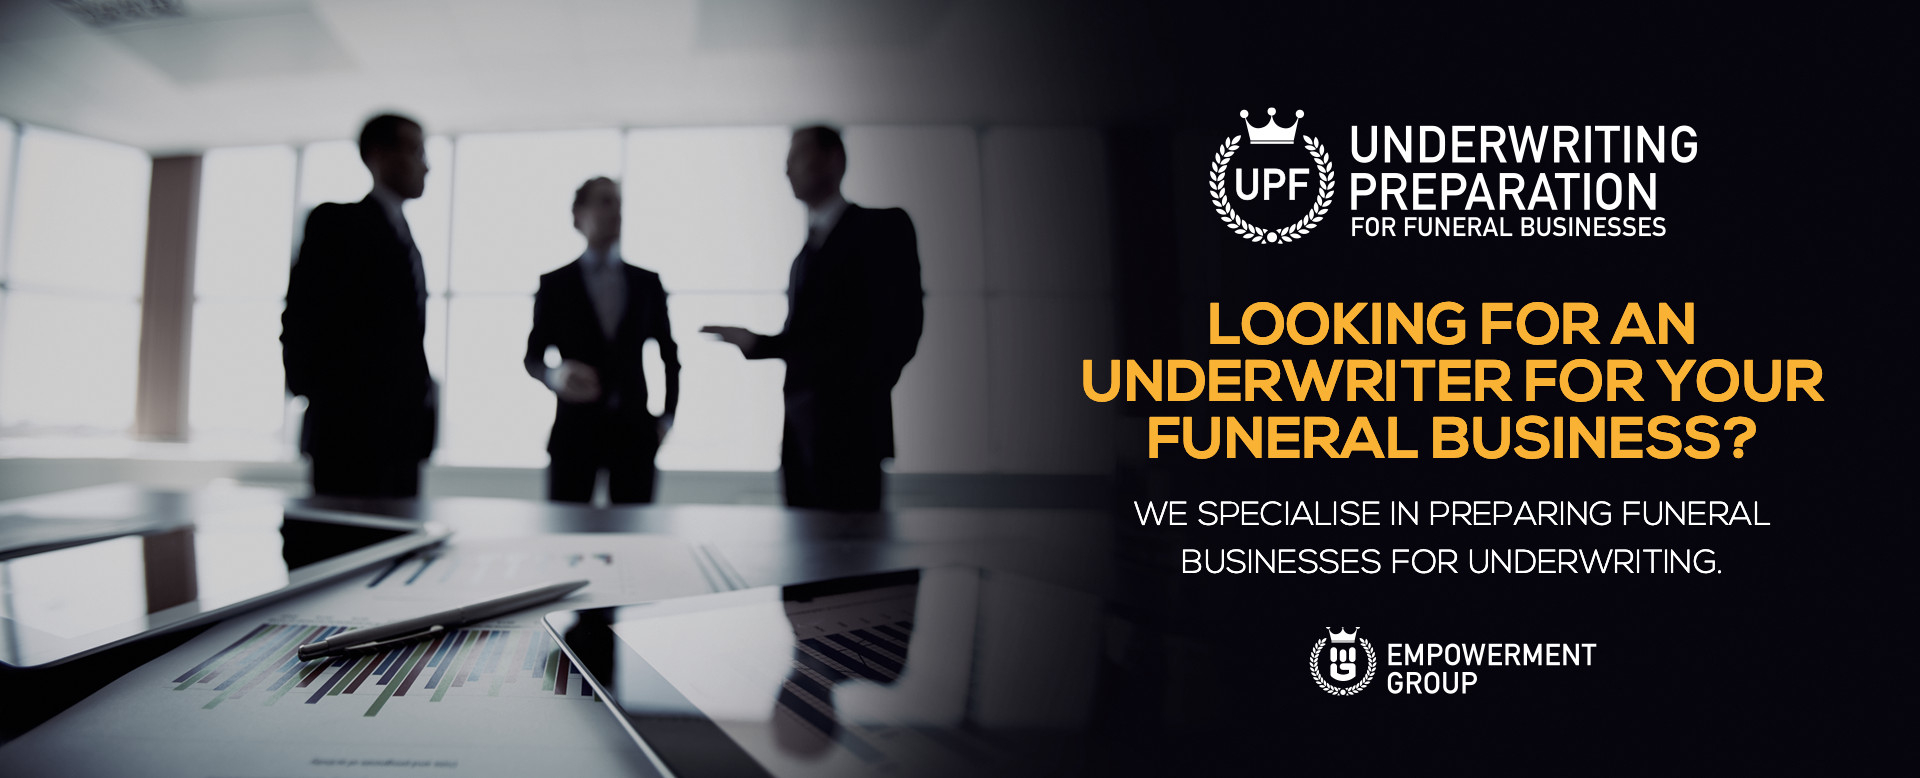 Underwriting Preparation for Funeral Businesses